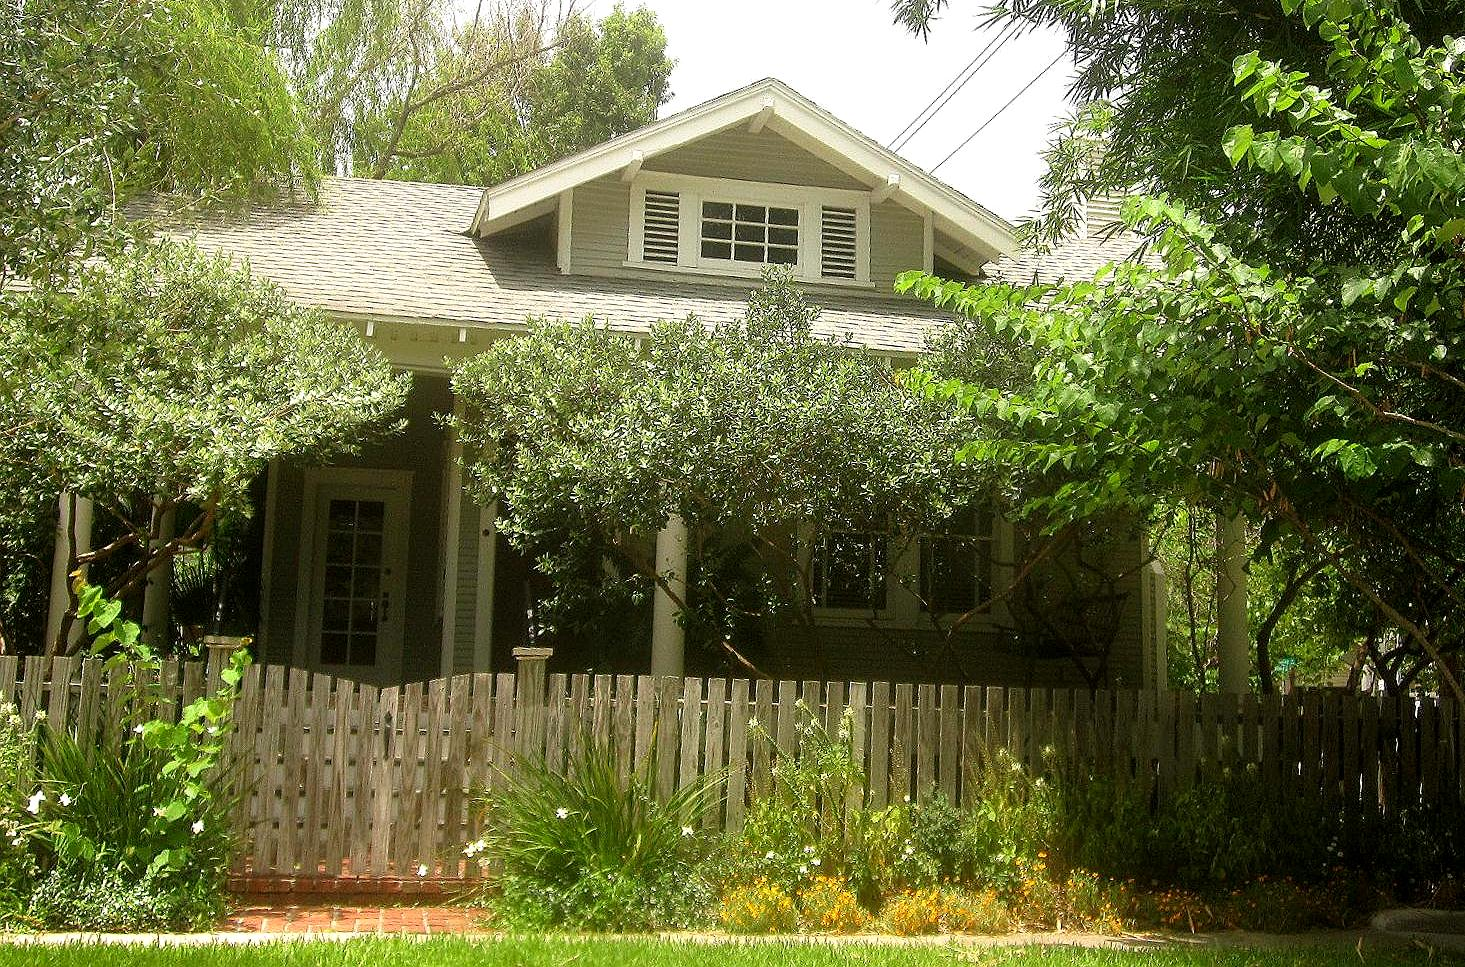 the other houston bungalow front yard garden ideas. Black Bedroom Furniture Sets. Home Design Ideas